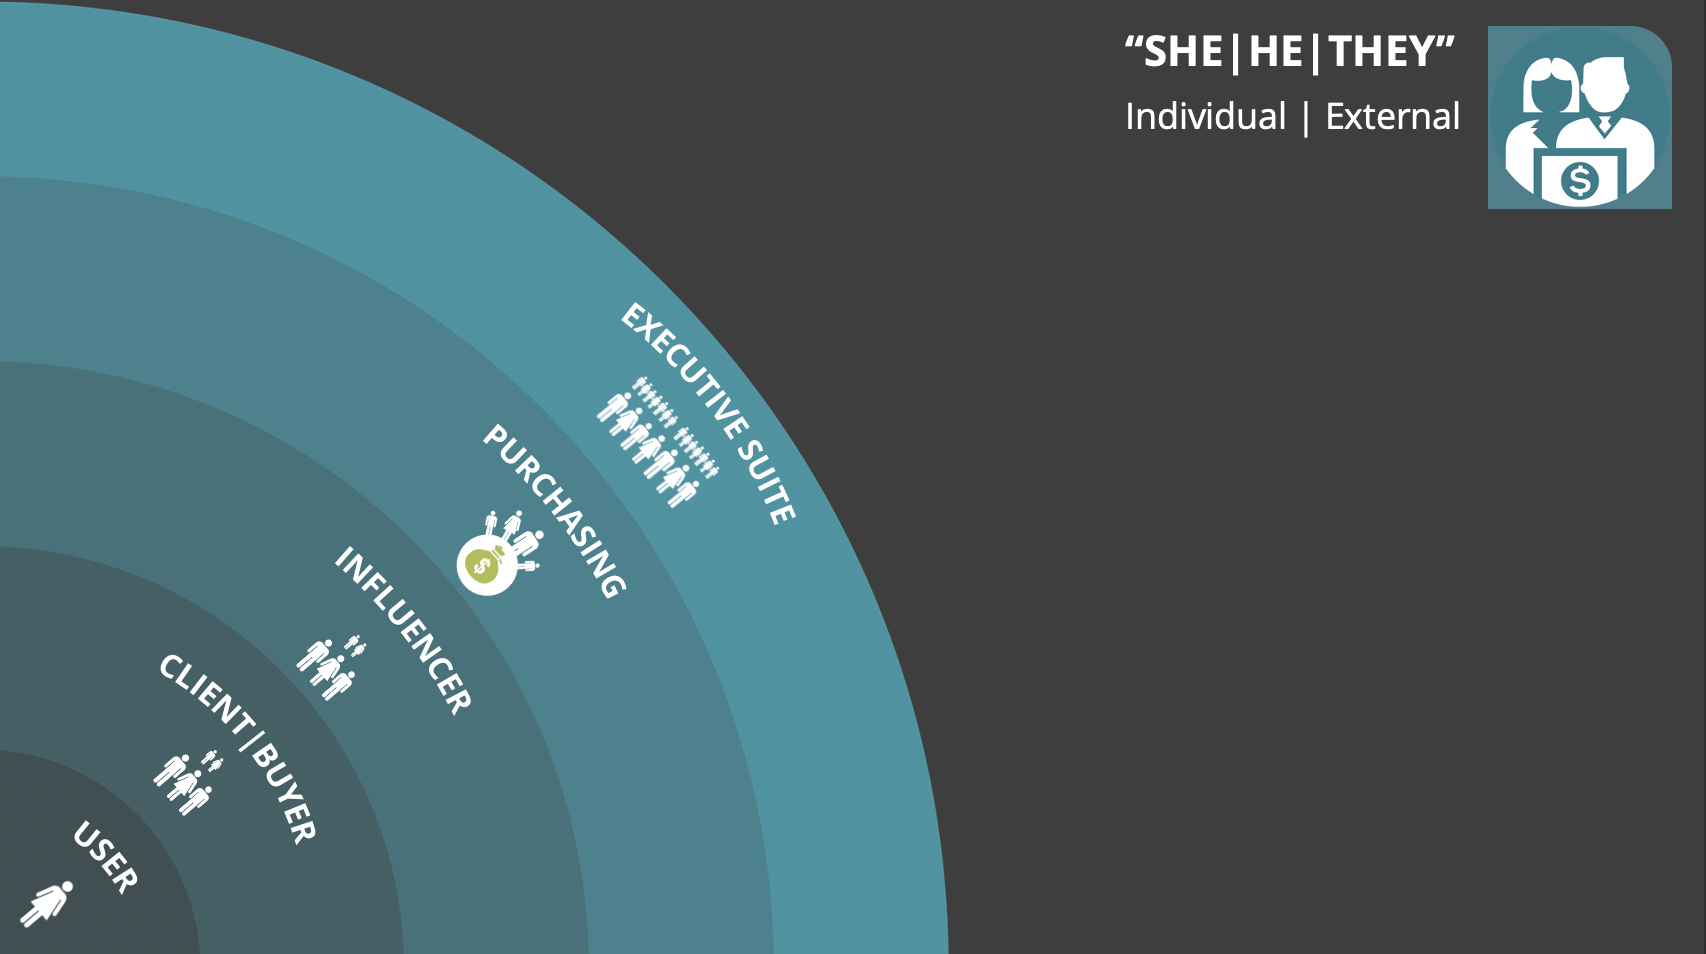 Nested Semi-Circles of External Individuals | CXO > Purchasing > Influencer > Client Buyer > User / Consumer